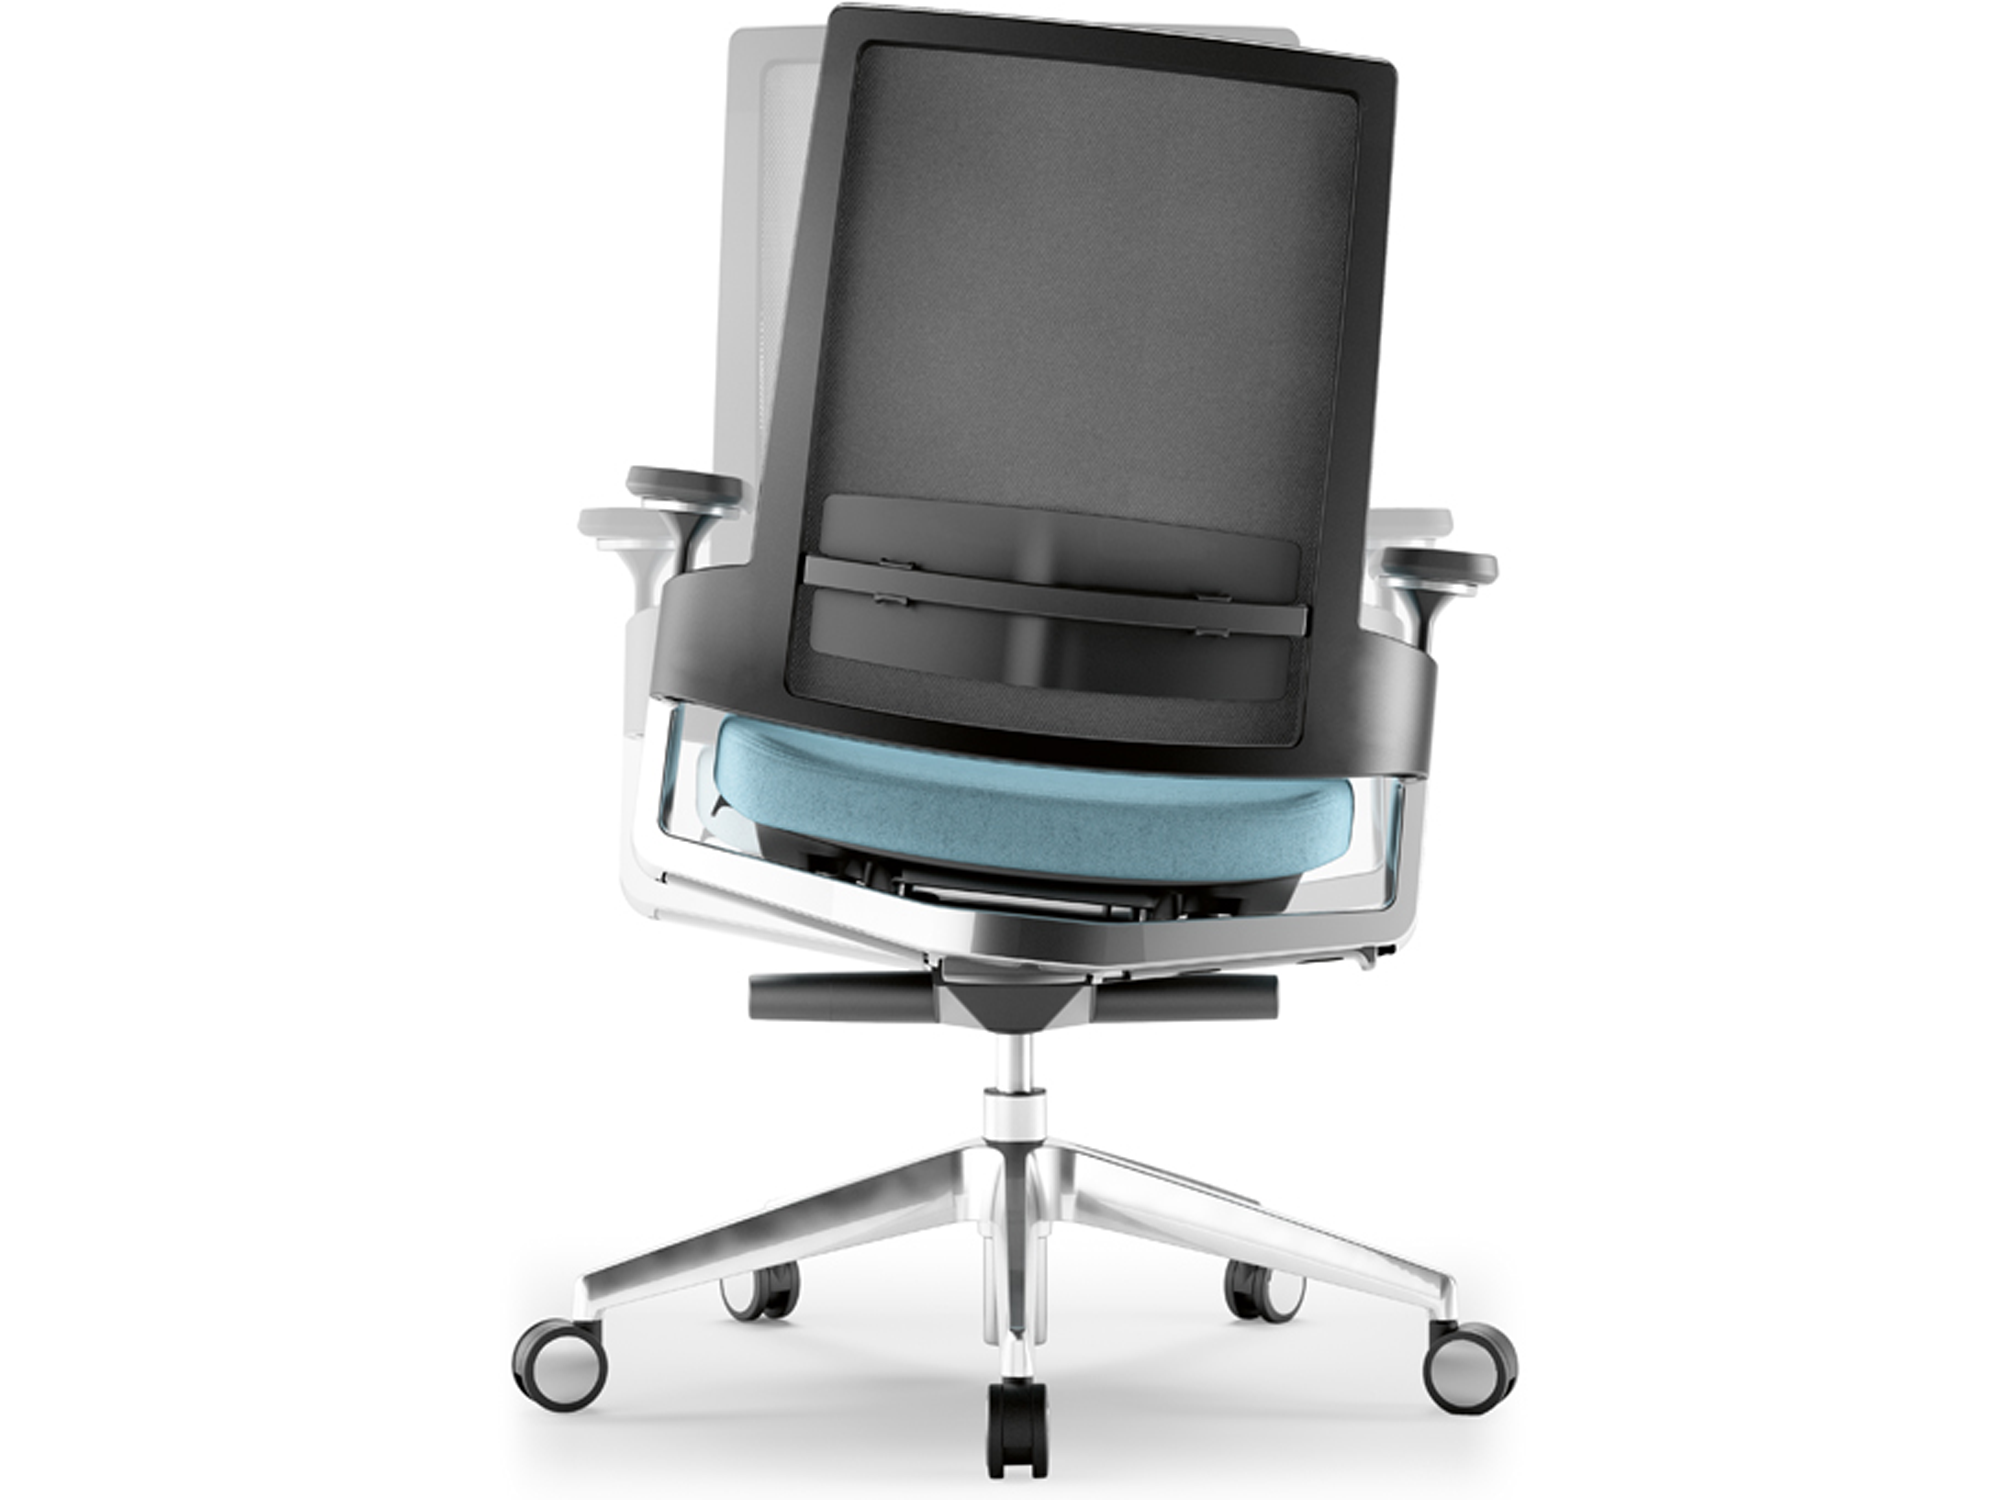 Ergonomic_chair_14.jpg